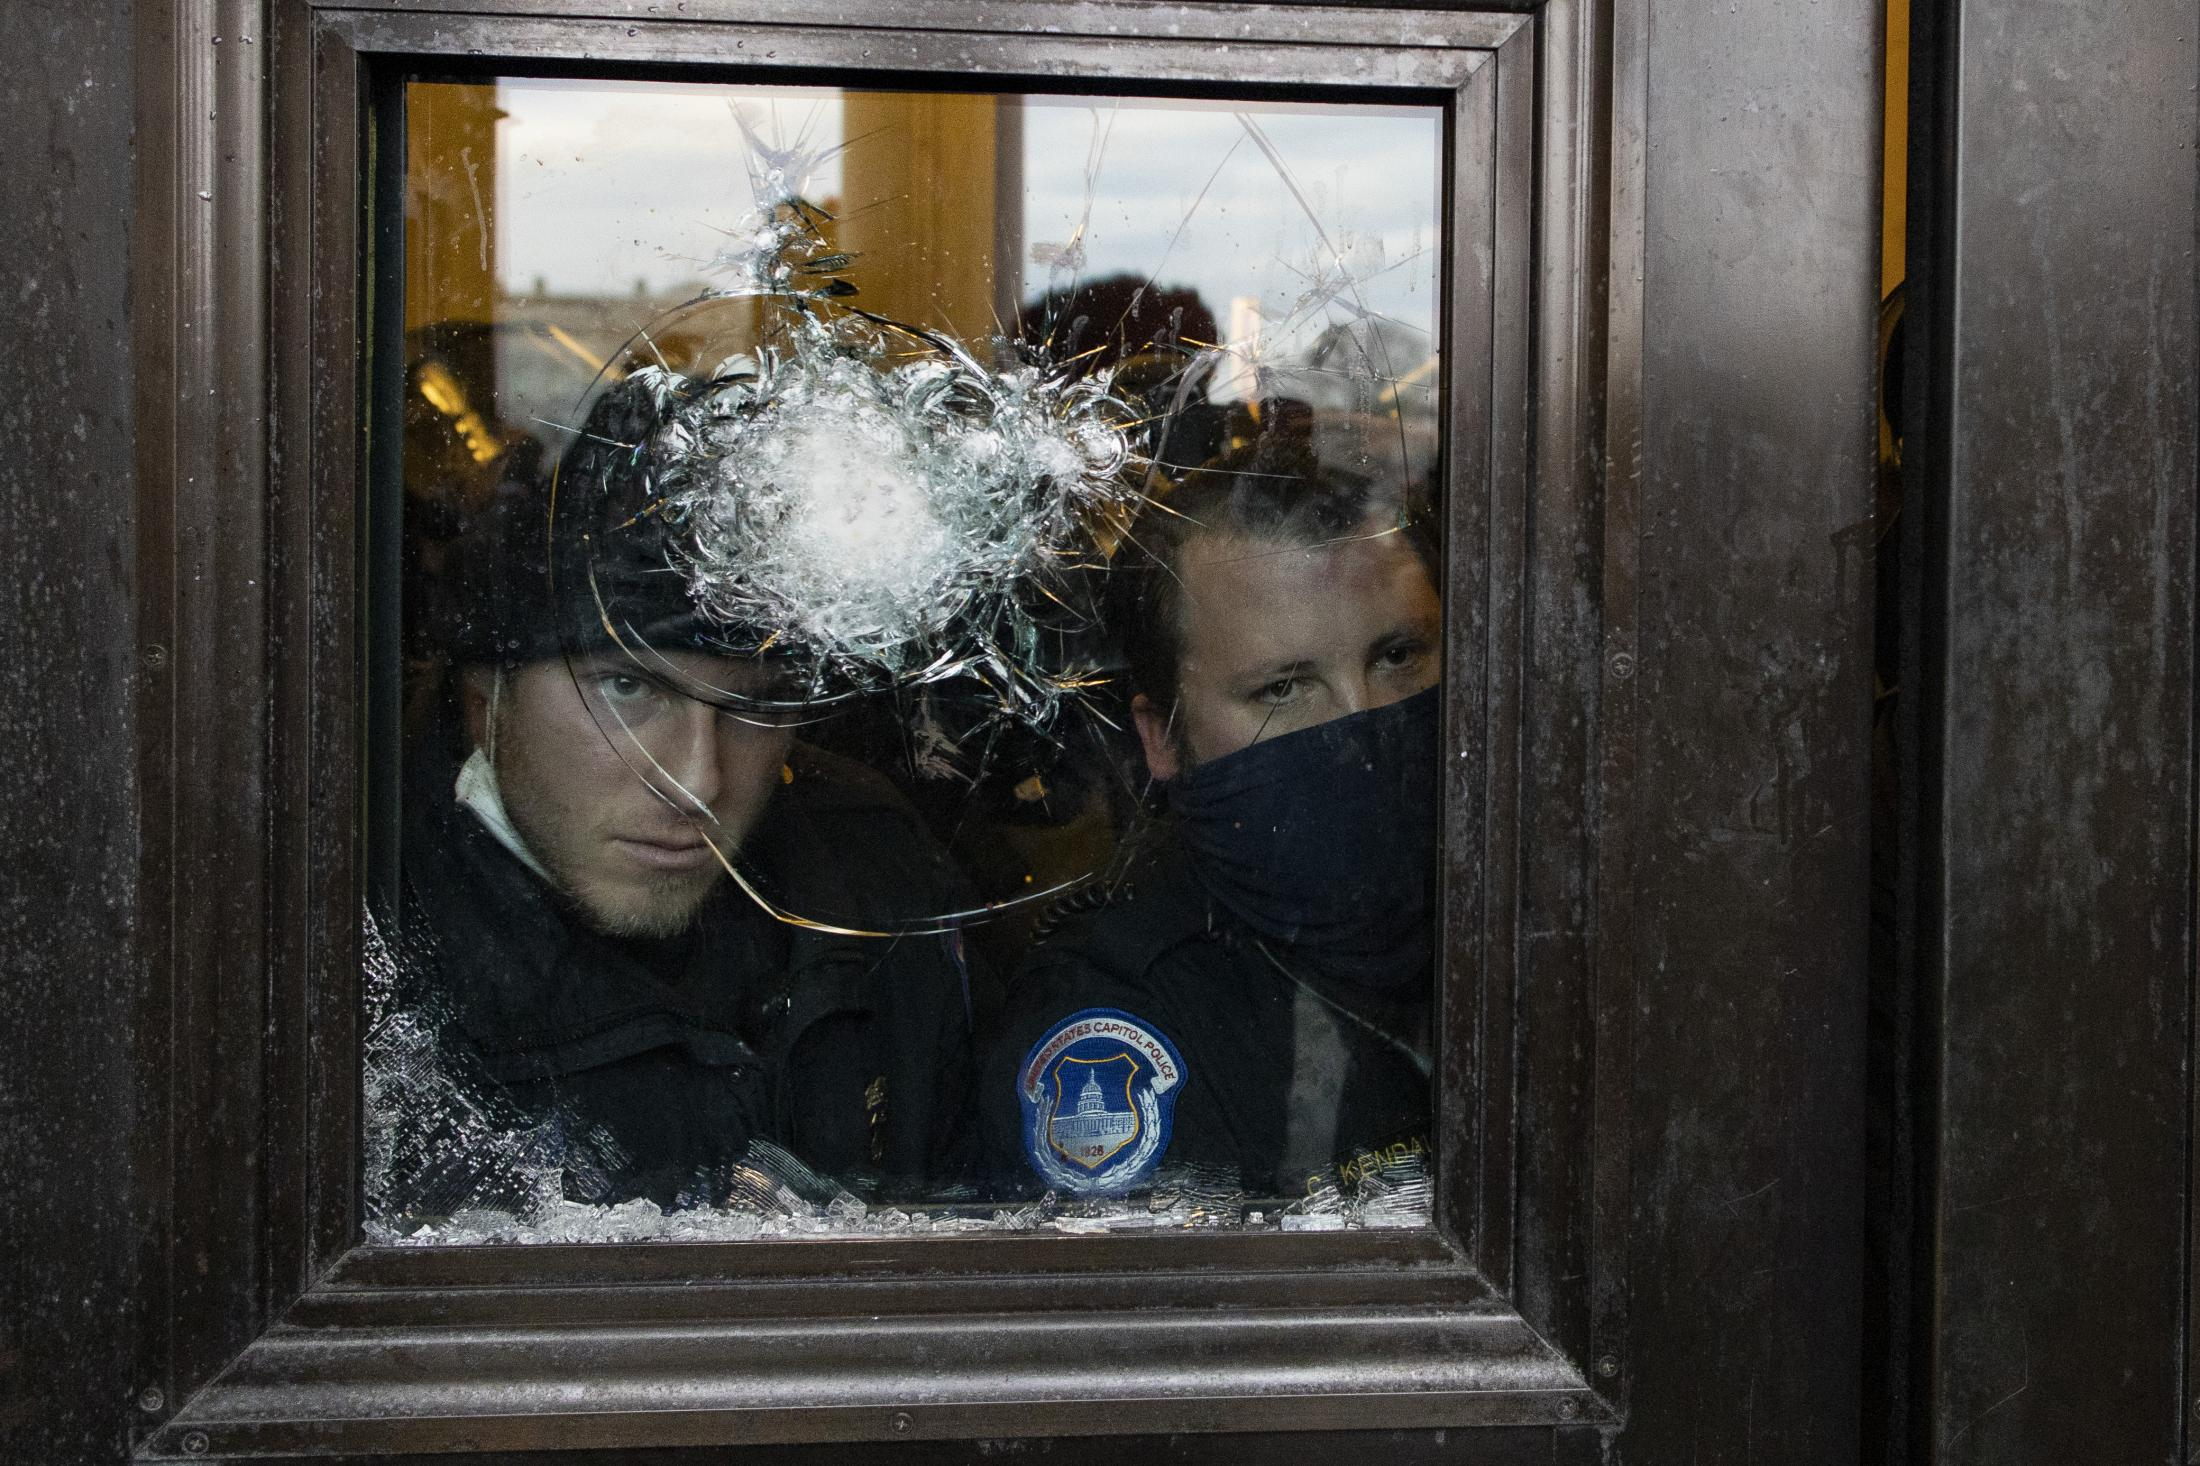 Members of the Capitol police look through a smashed window after they pushed supporters of US President Donald Trump outside of the Capitol building. January 6, 2021.